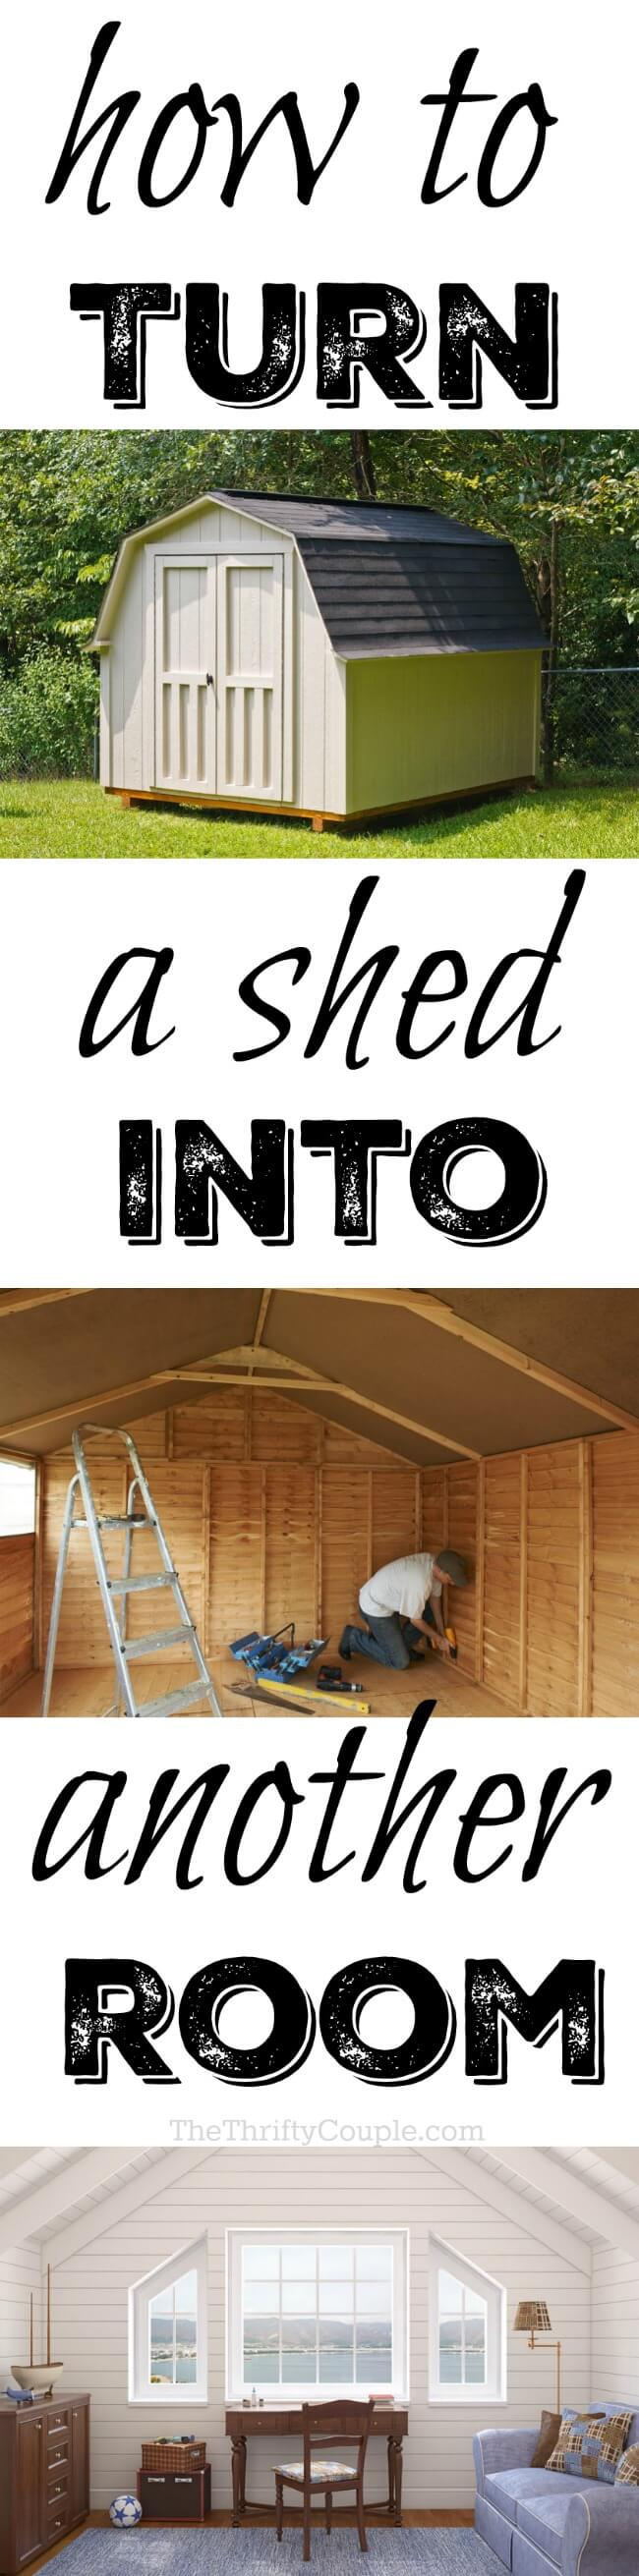 turn shed into another room